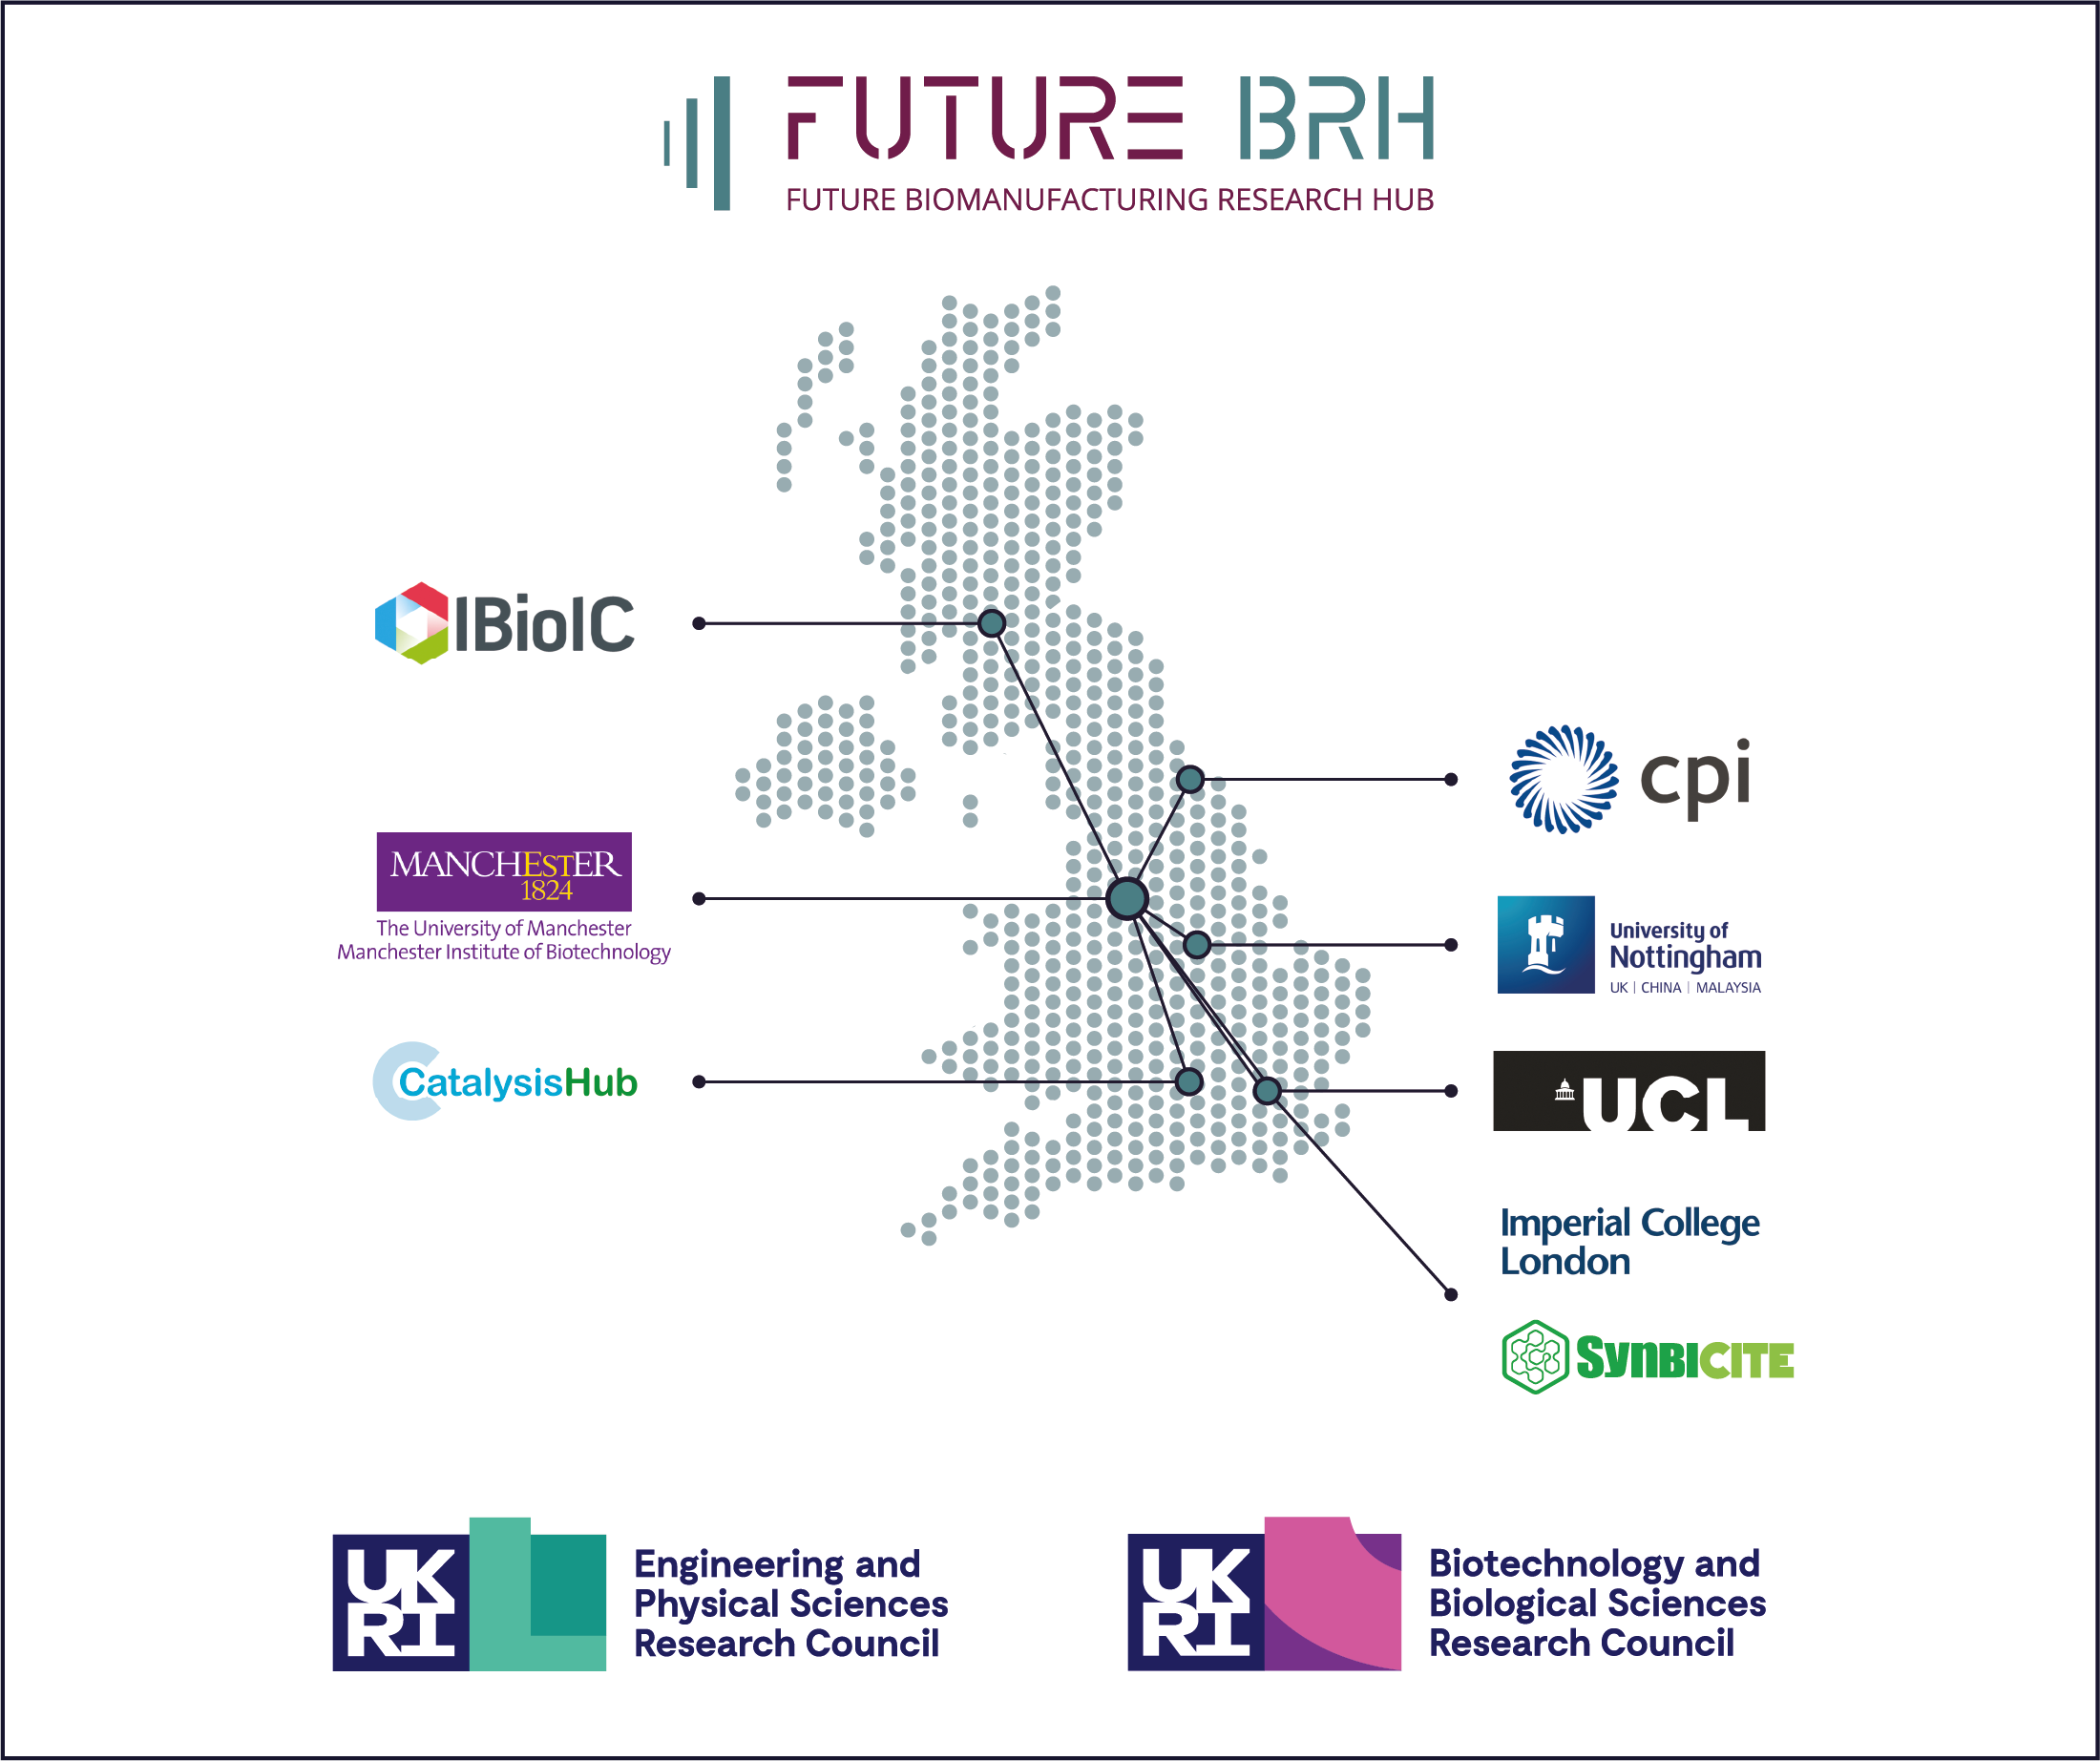 Future BRH - Future Biomanufacturing Research Hub - Partner Map